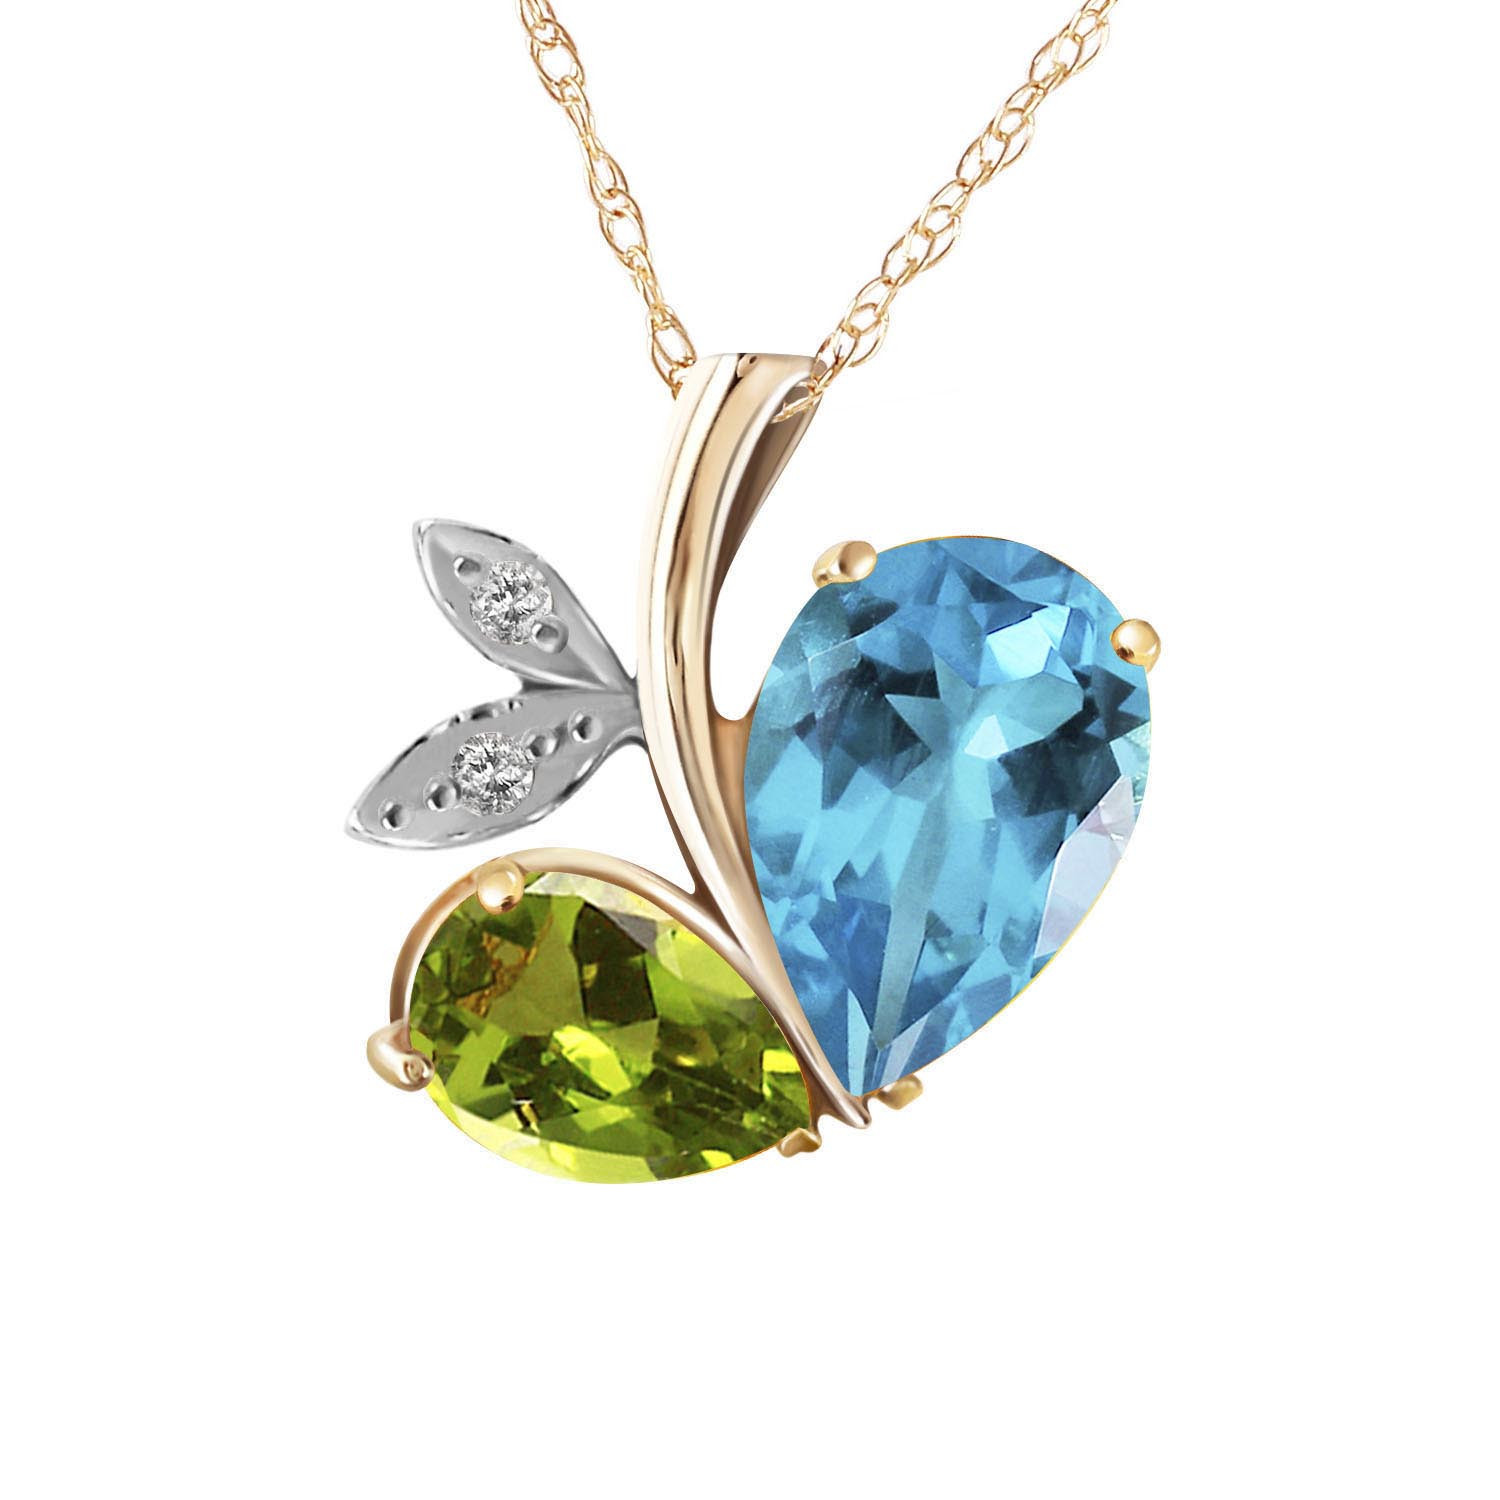 Blue Topaz & Diamond Eternal Pendant Necklace in 9ct Gold